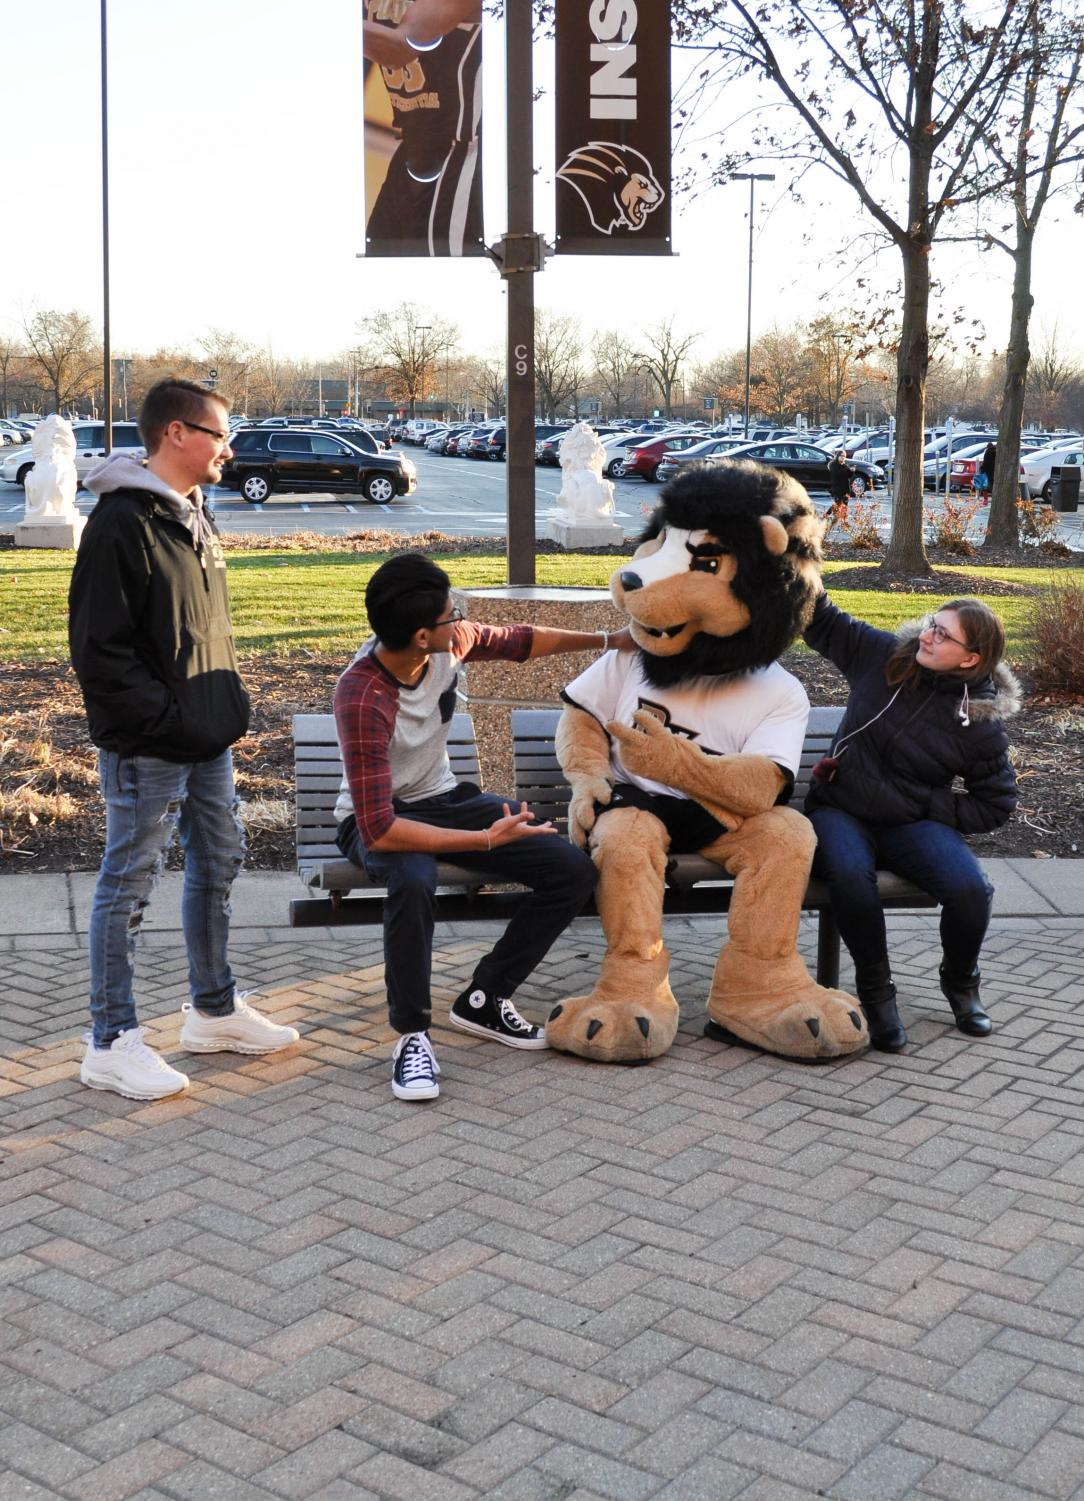 Matthew Kiel (left), freshman engineering major, Ruben Gonzalez (left center), freshman criminal justice major, and Kalina Ziemlo (right), freshman elementary education major hang out with Leo.